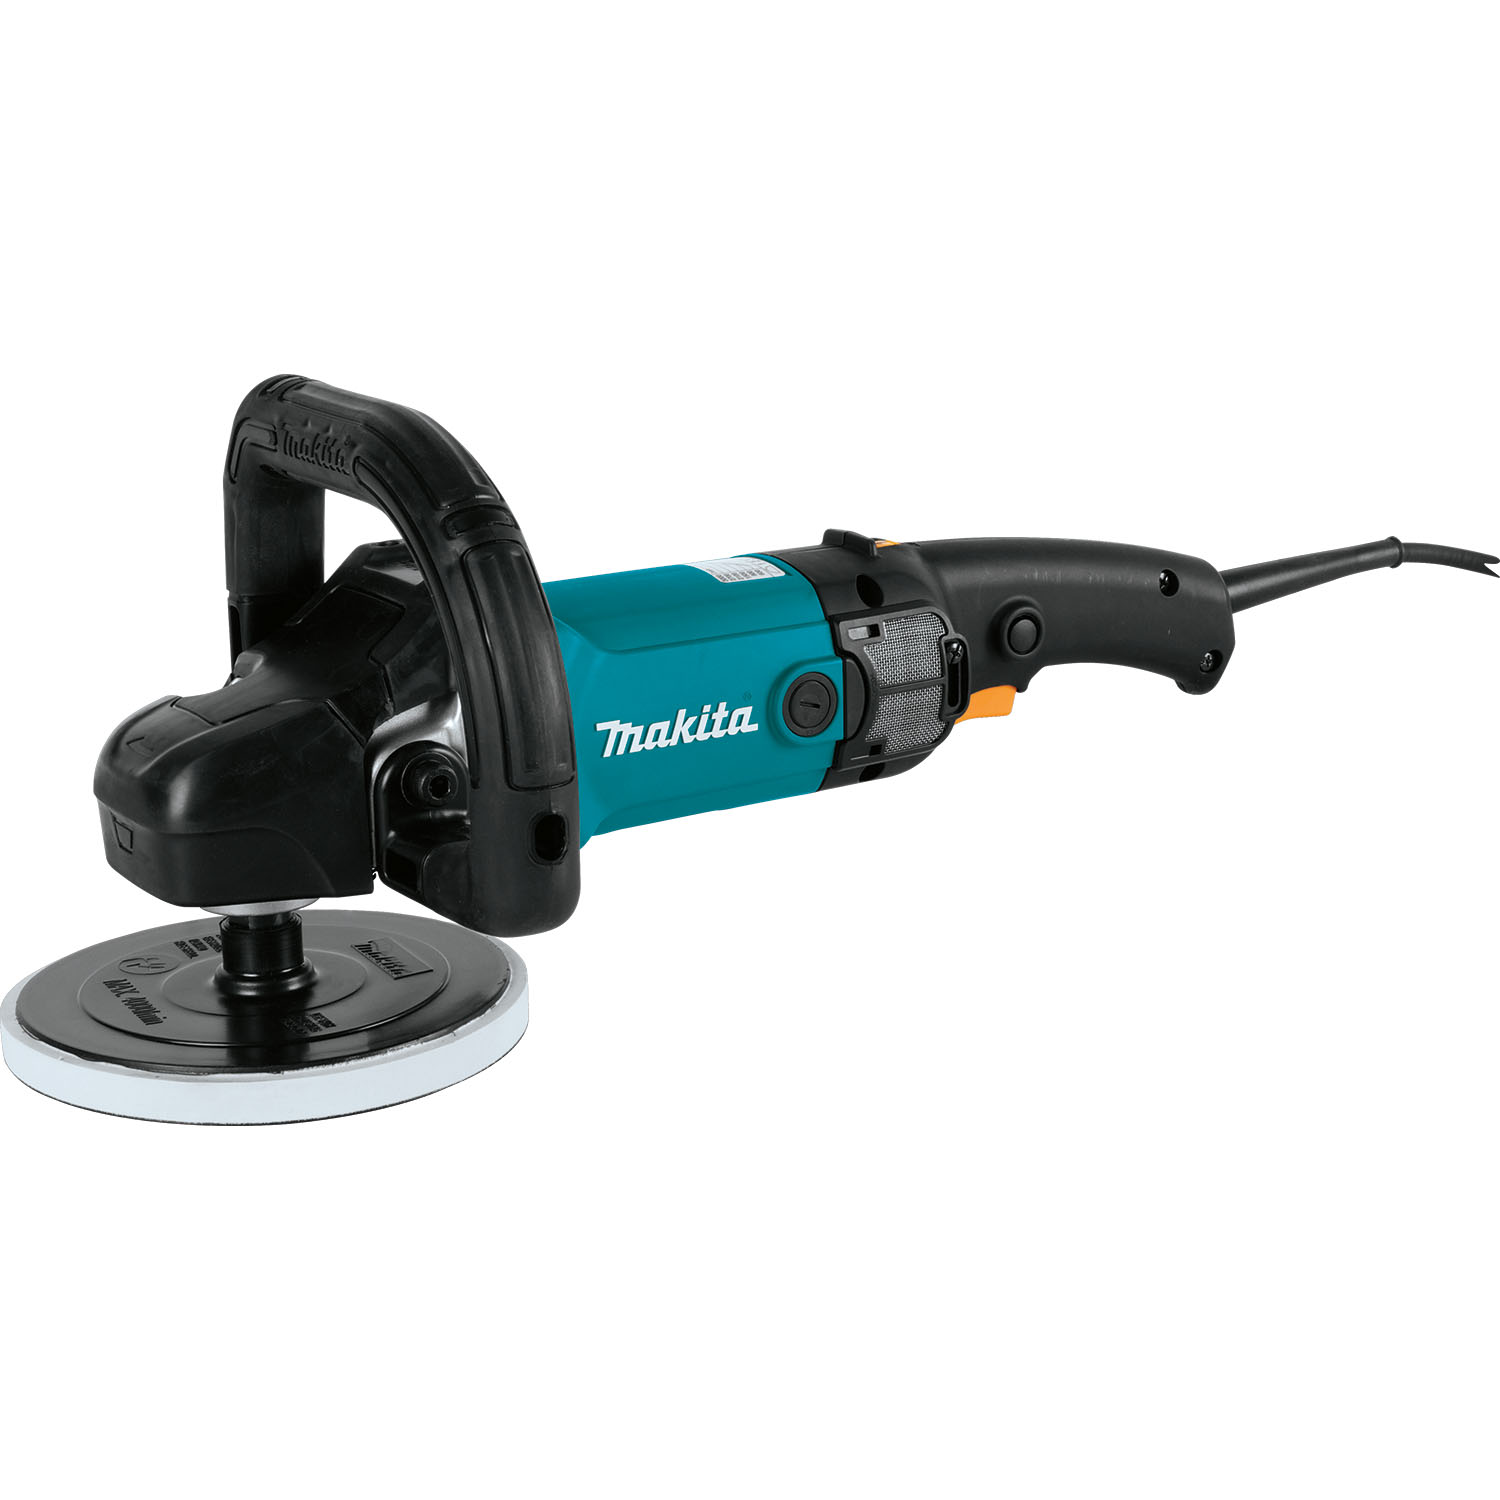 Makita 10 Amp 7 in. Variable Speed Polisher